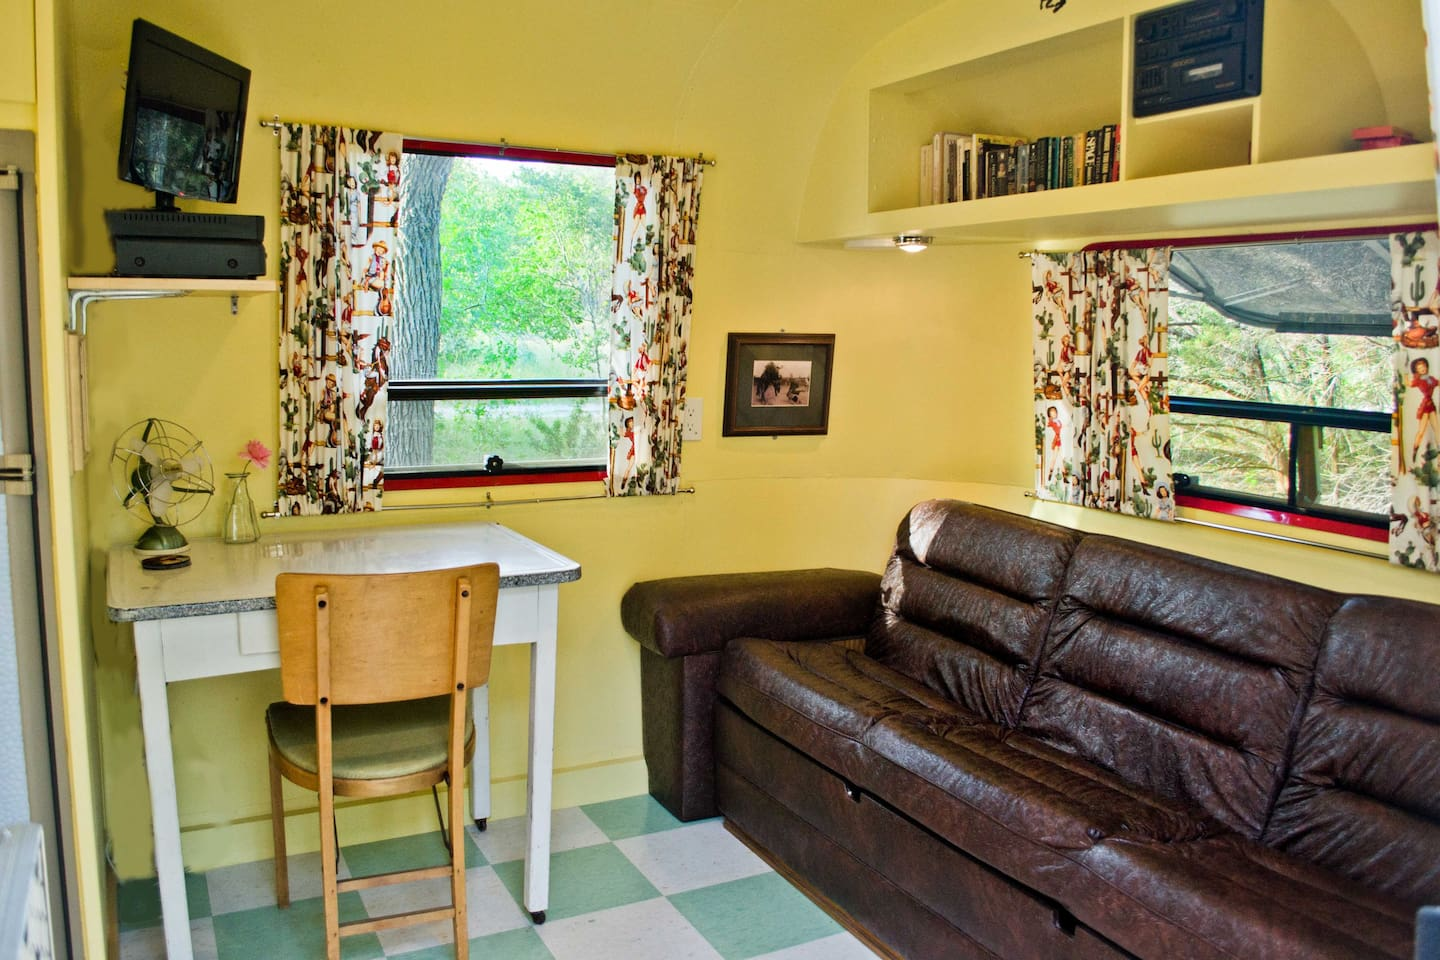 The living room has a full couch, table and chair, satellite tv, games, and books.